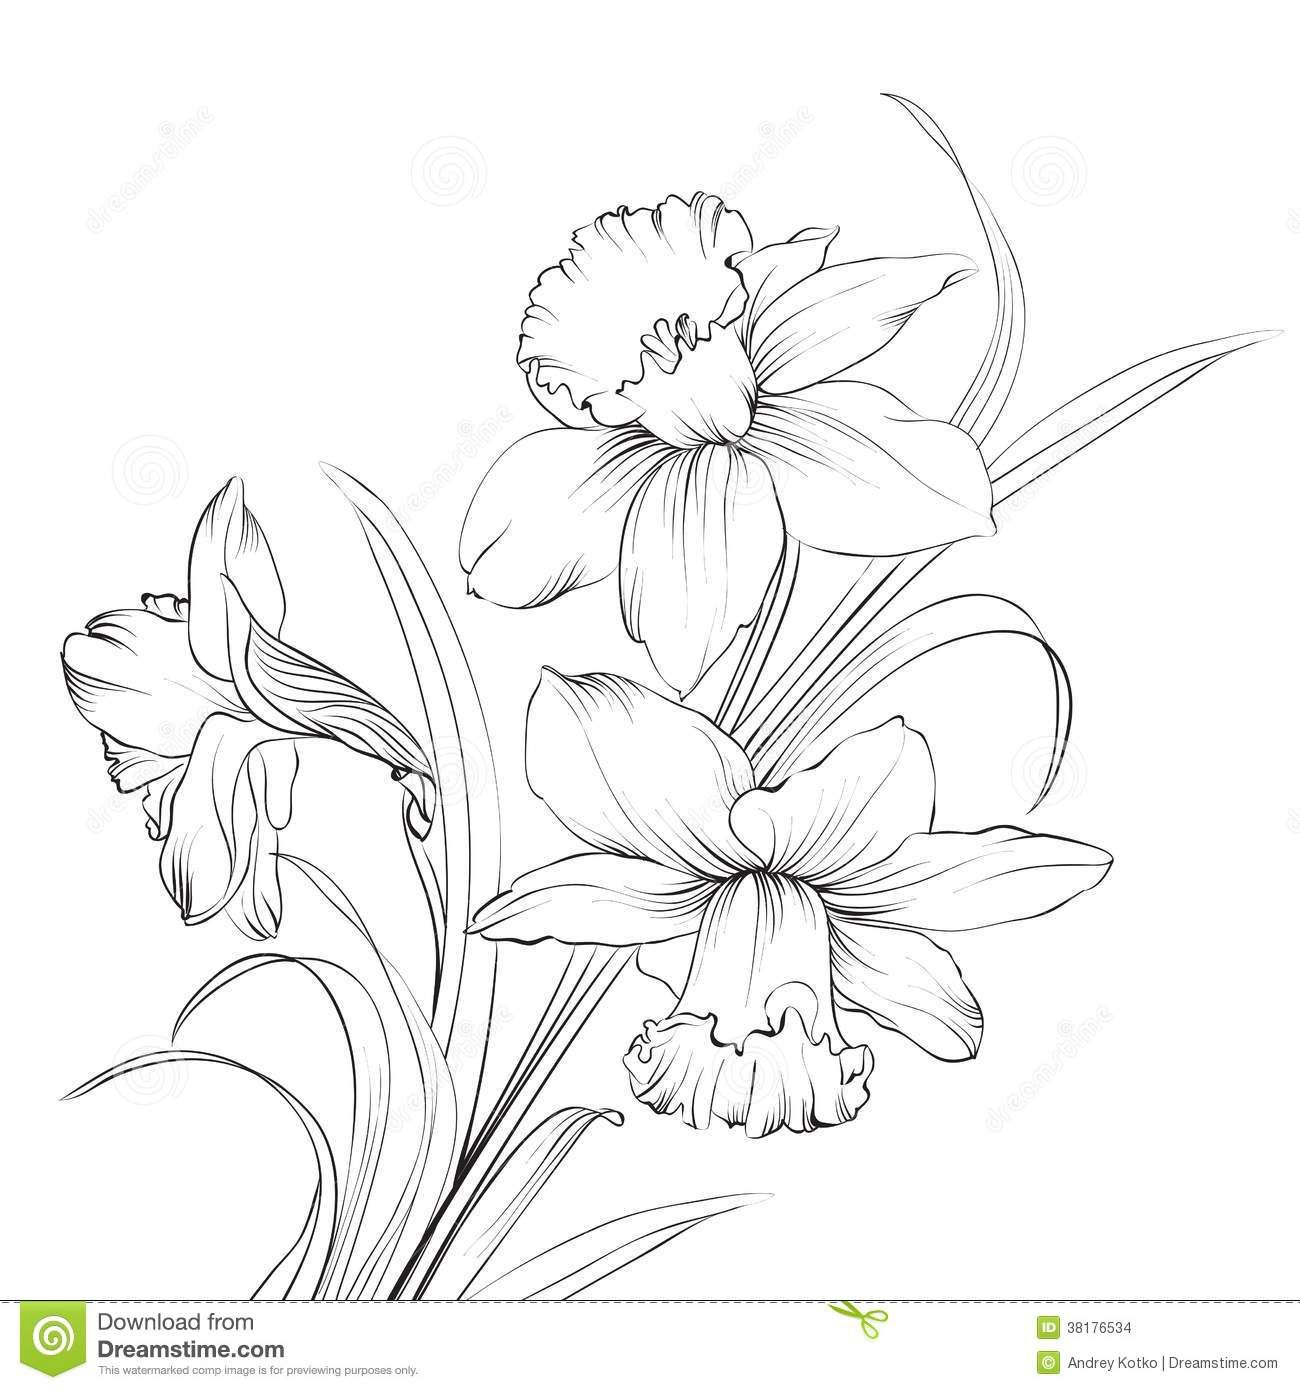 Narcissus Stock Illustrations 2 092 Narcissus Stock Illustrations Vectors Clipart Daffodil Tattoo Flower Drawing Birth Flower Tattoos